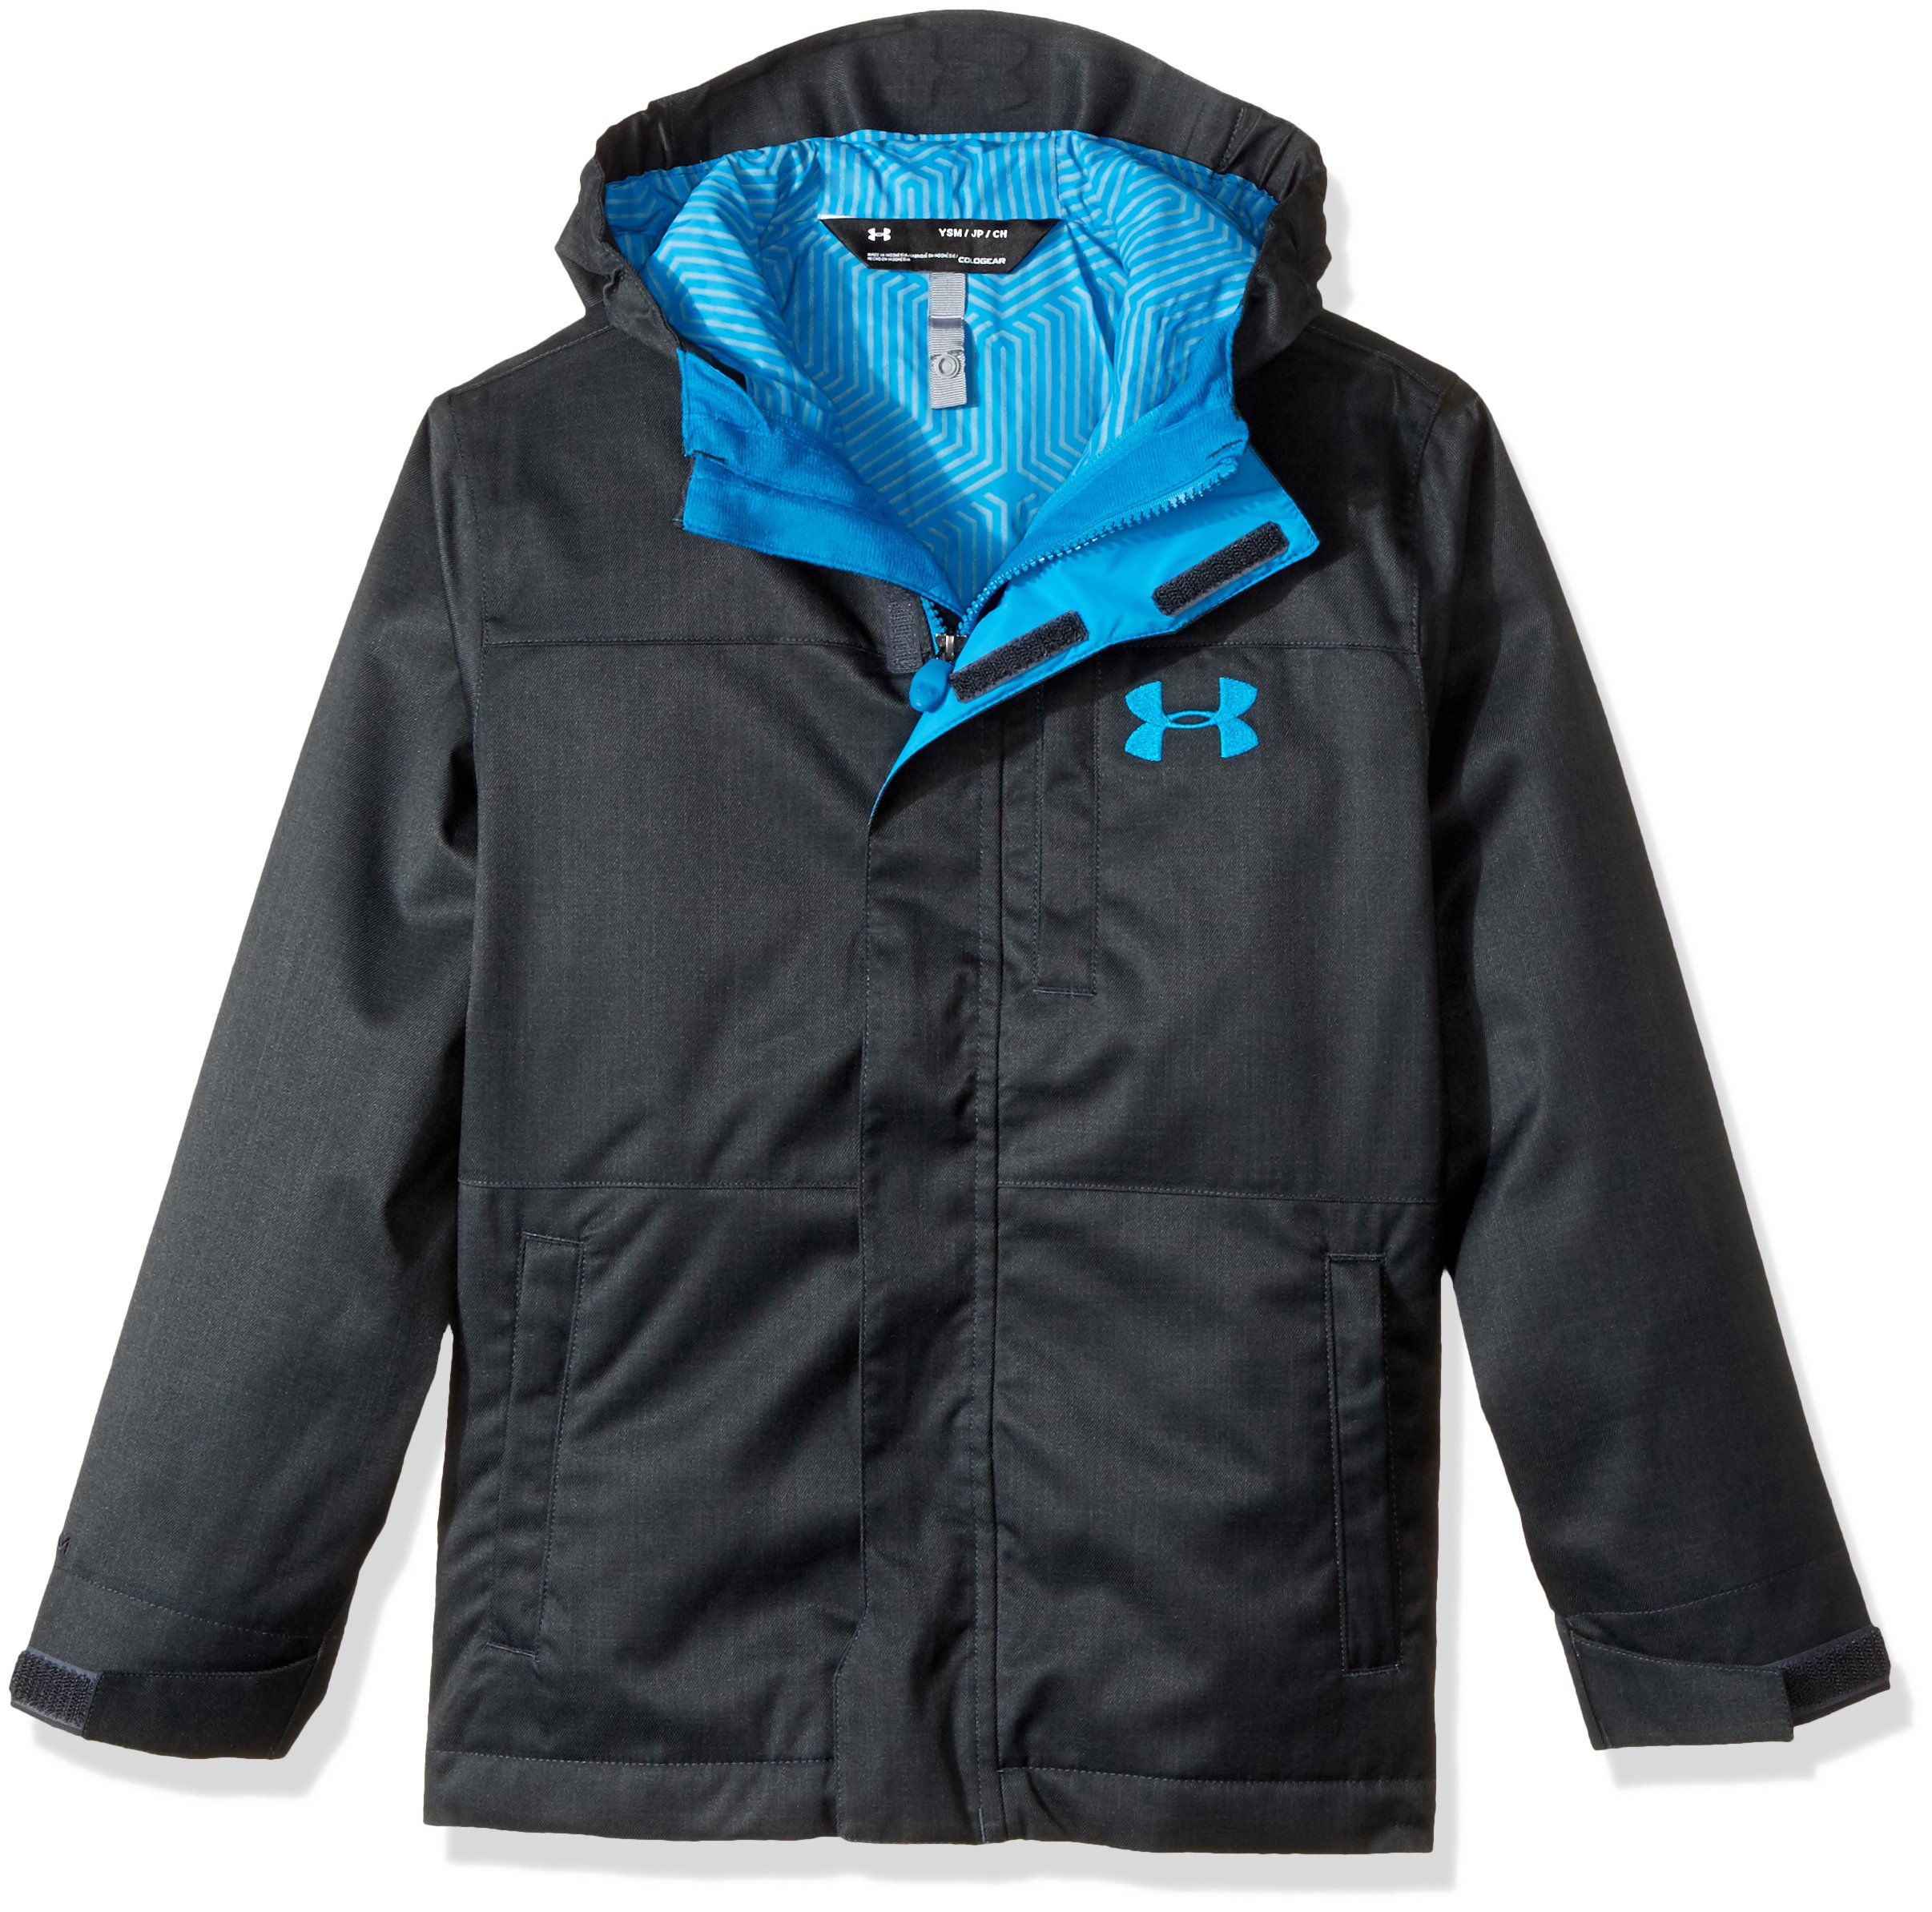 Under Armour Boys' Storm Wildwood 3-in-1 Jacket, Anthracite/Cruise Blue, Youth Small by Under Armour